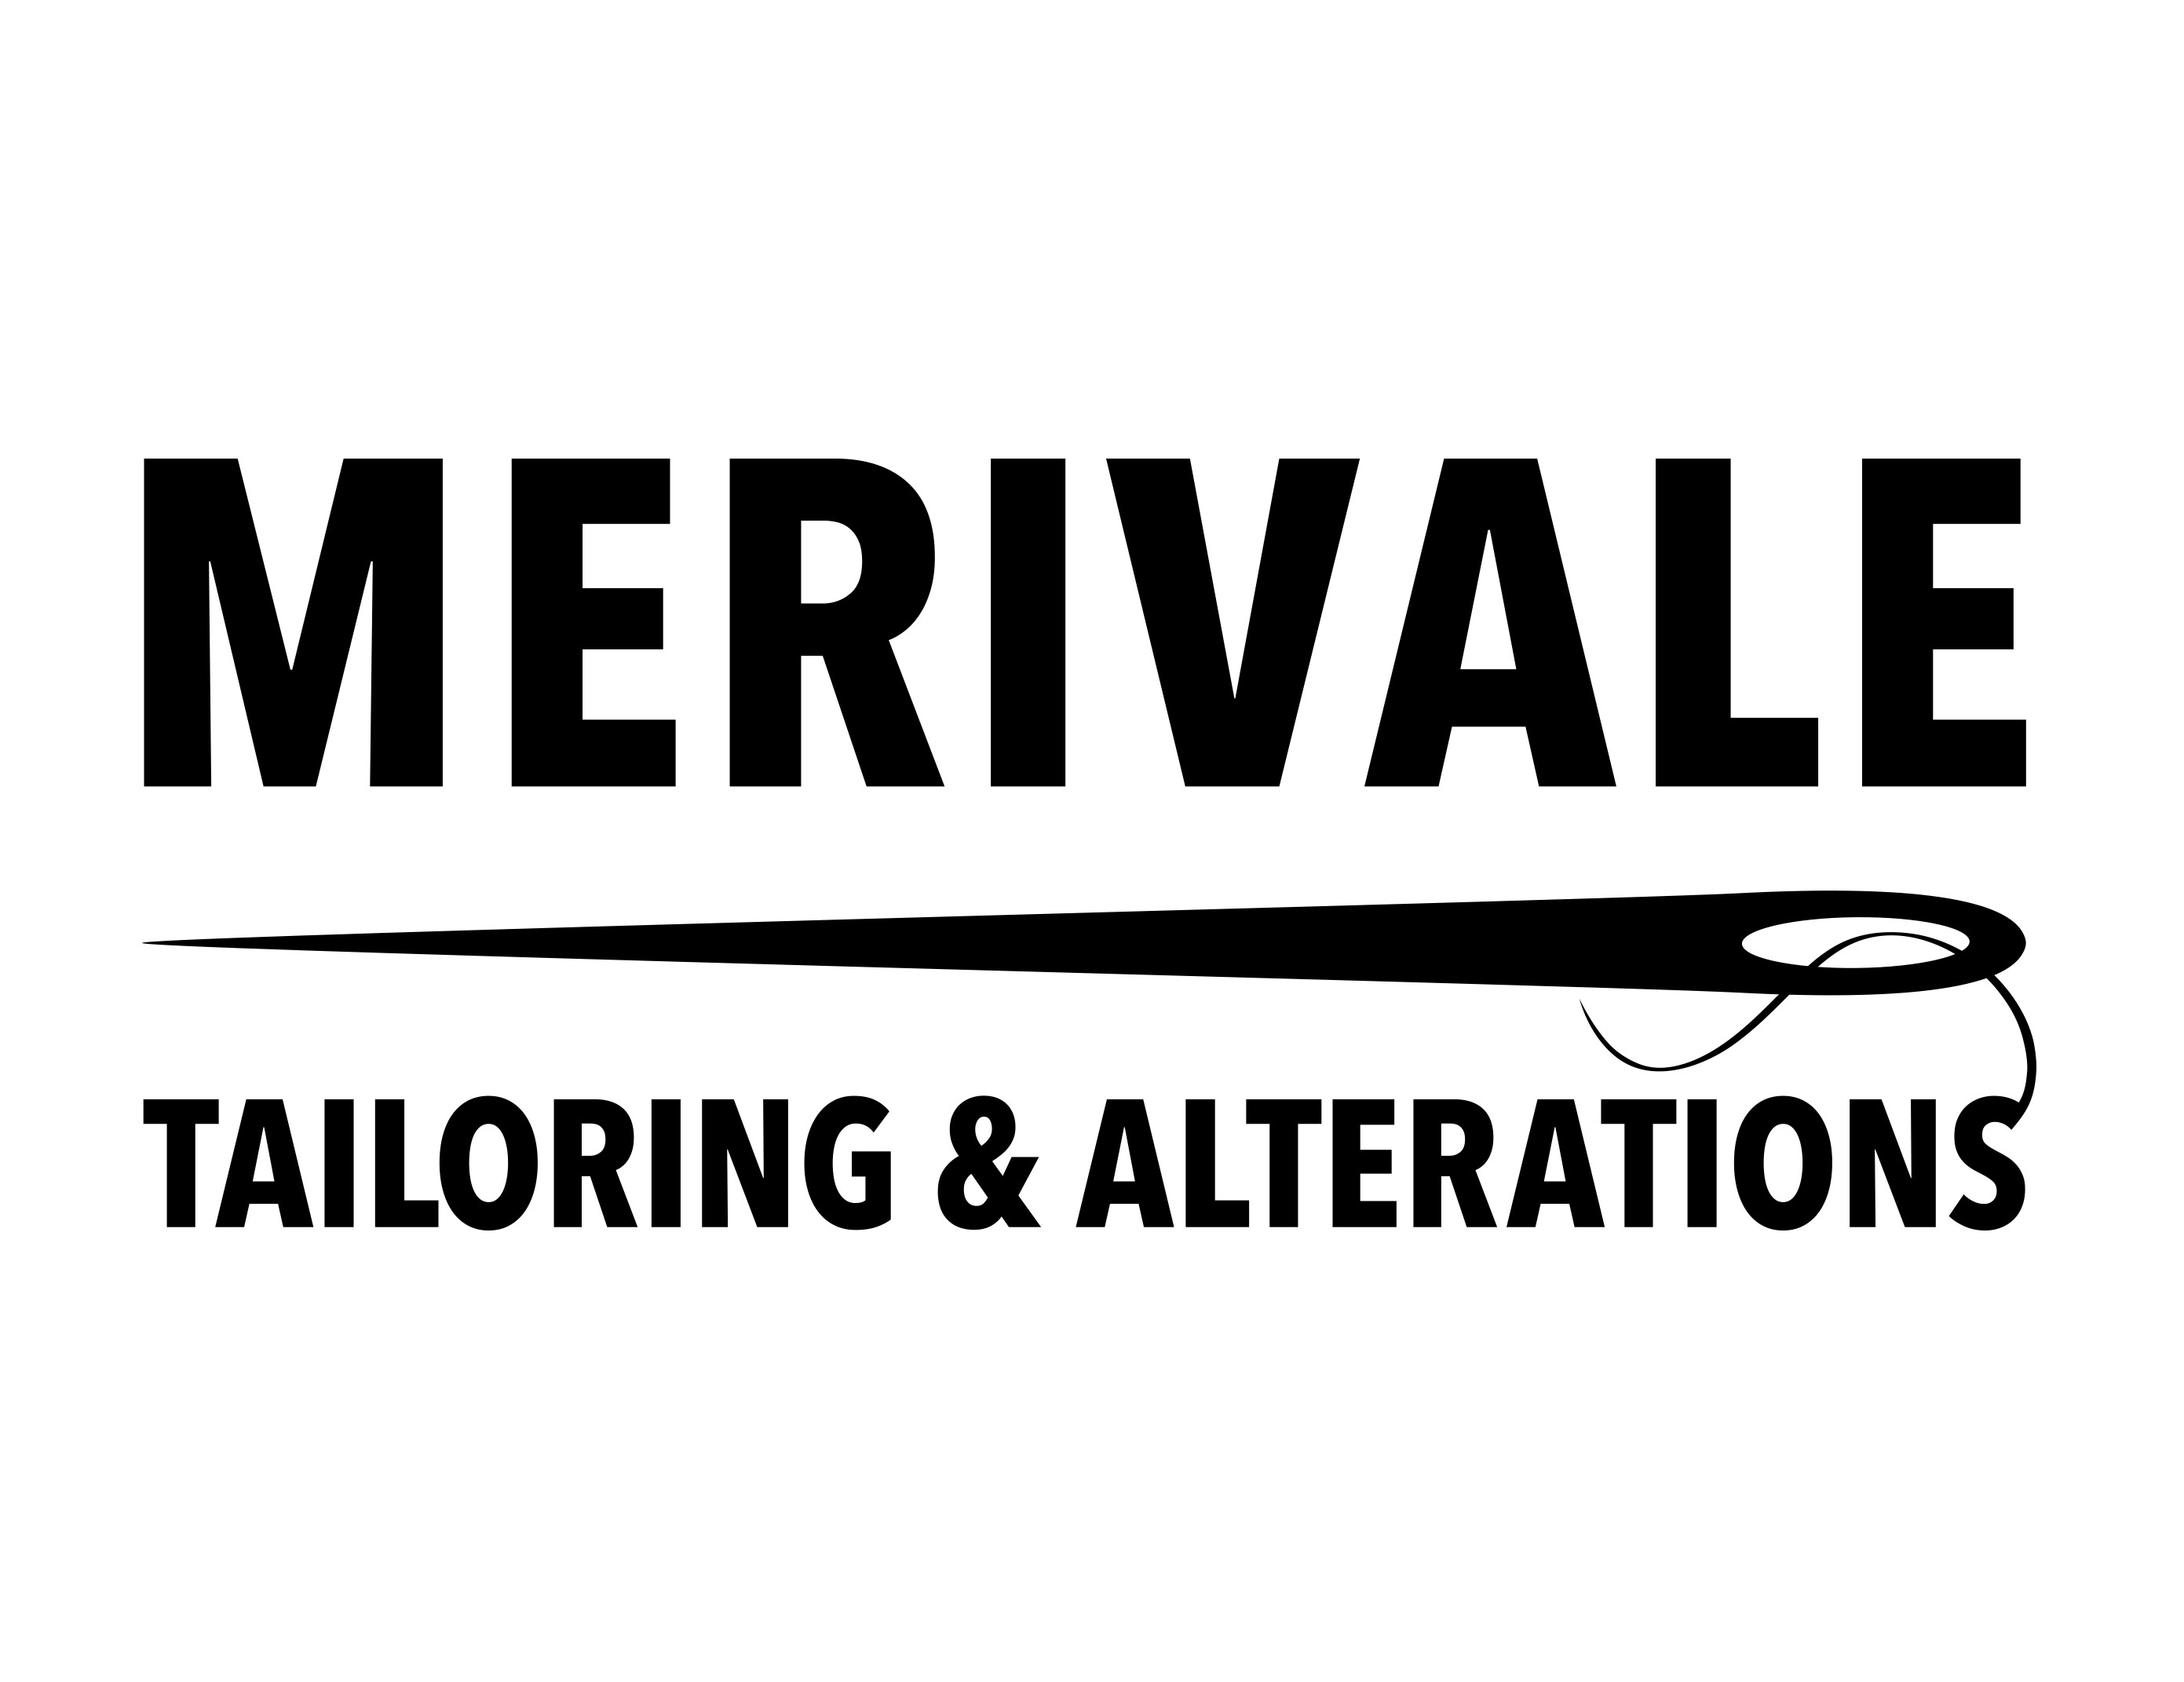 Merivale Tailoring & Alterations